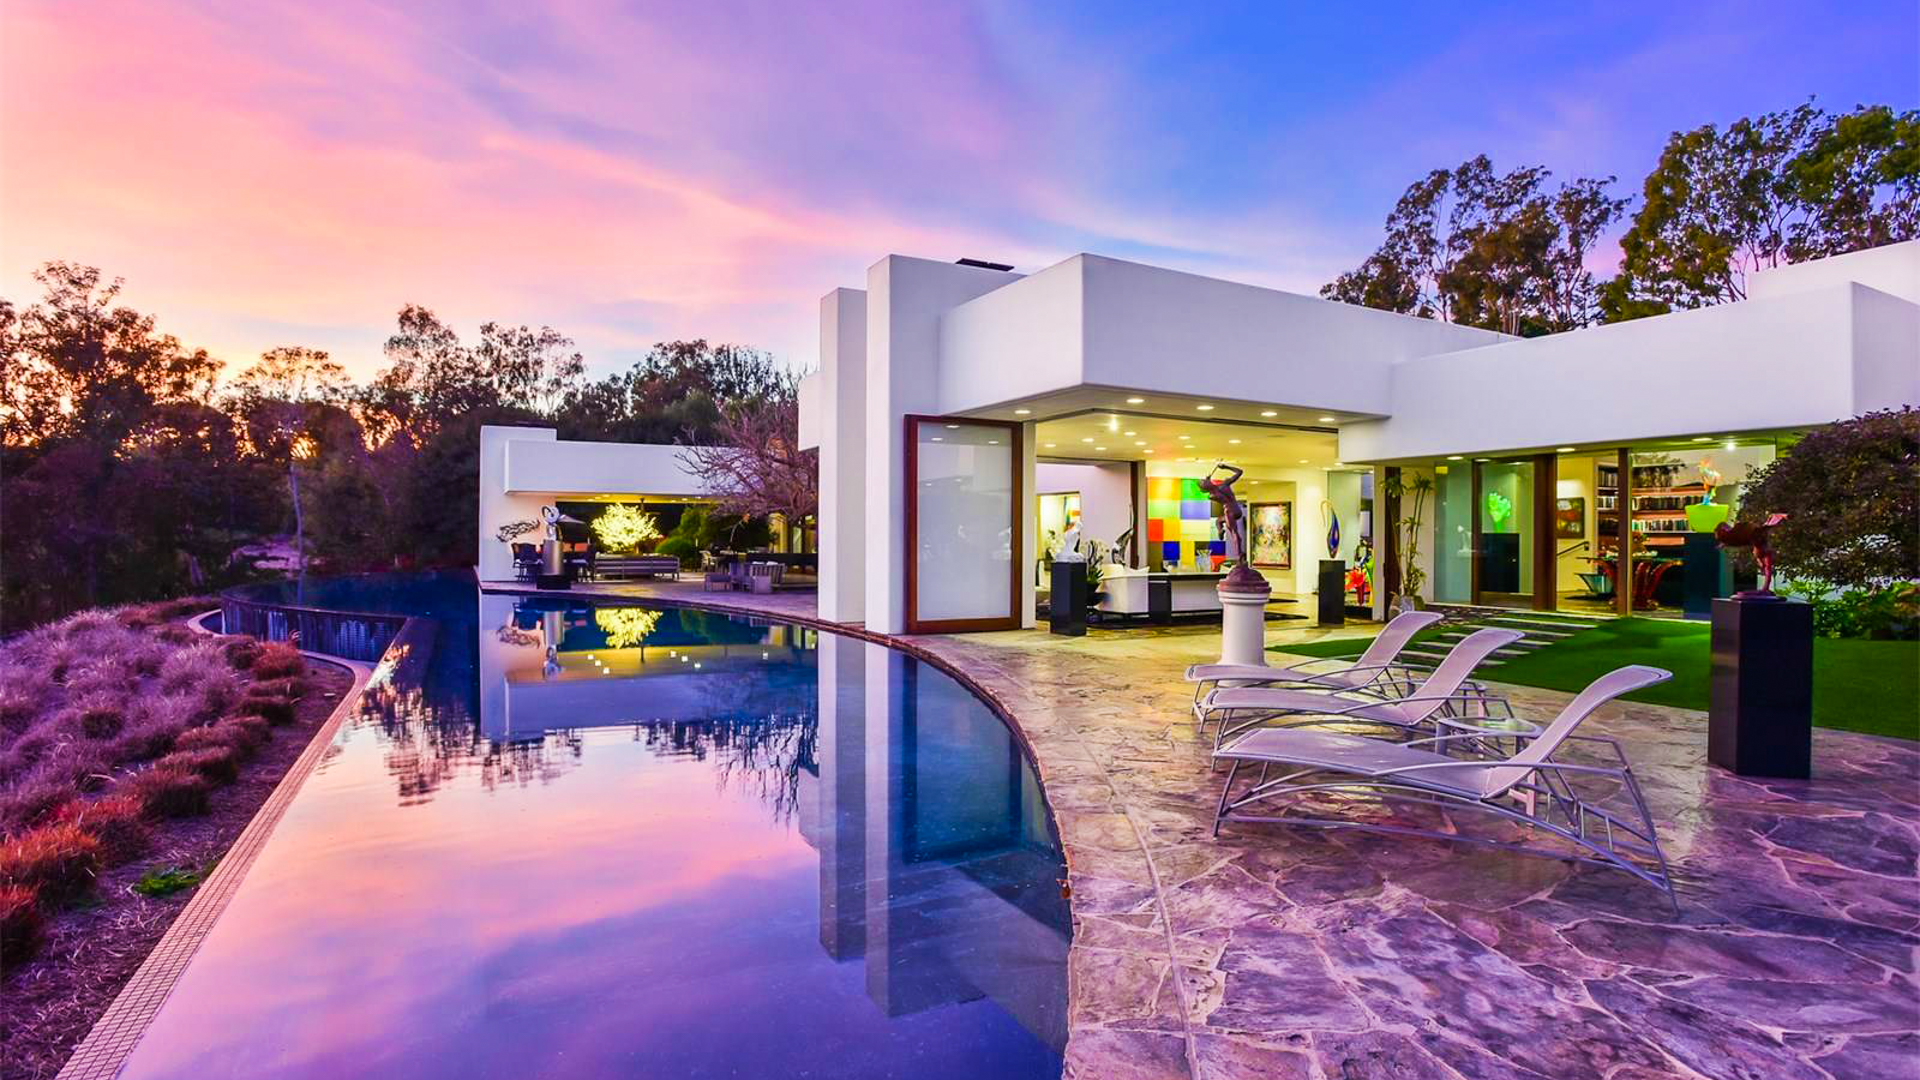 7 Gorgeous Houses With Infinity Pools